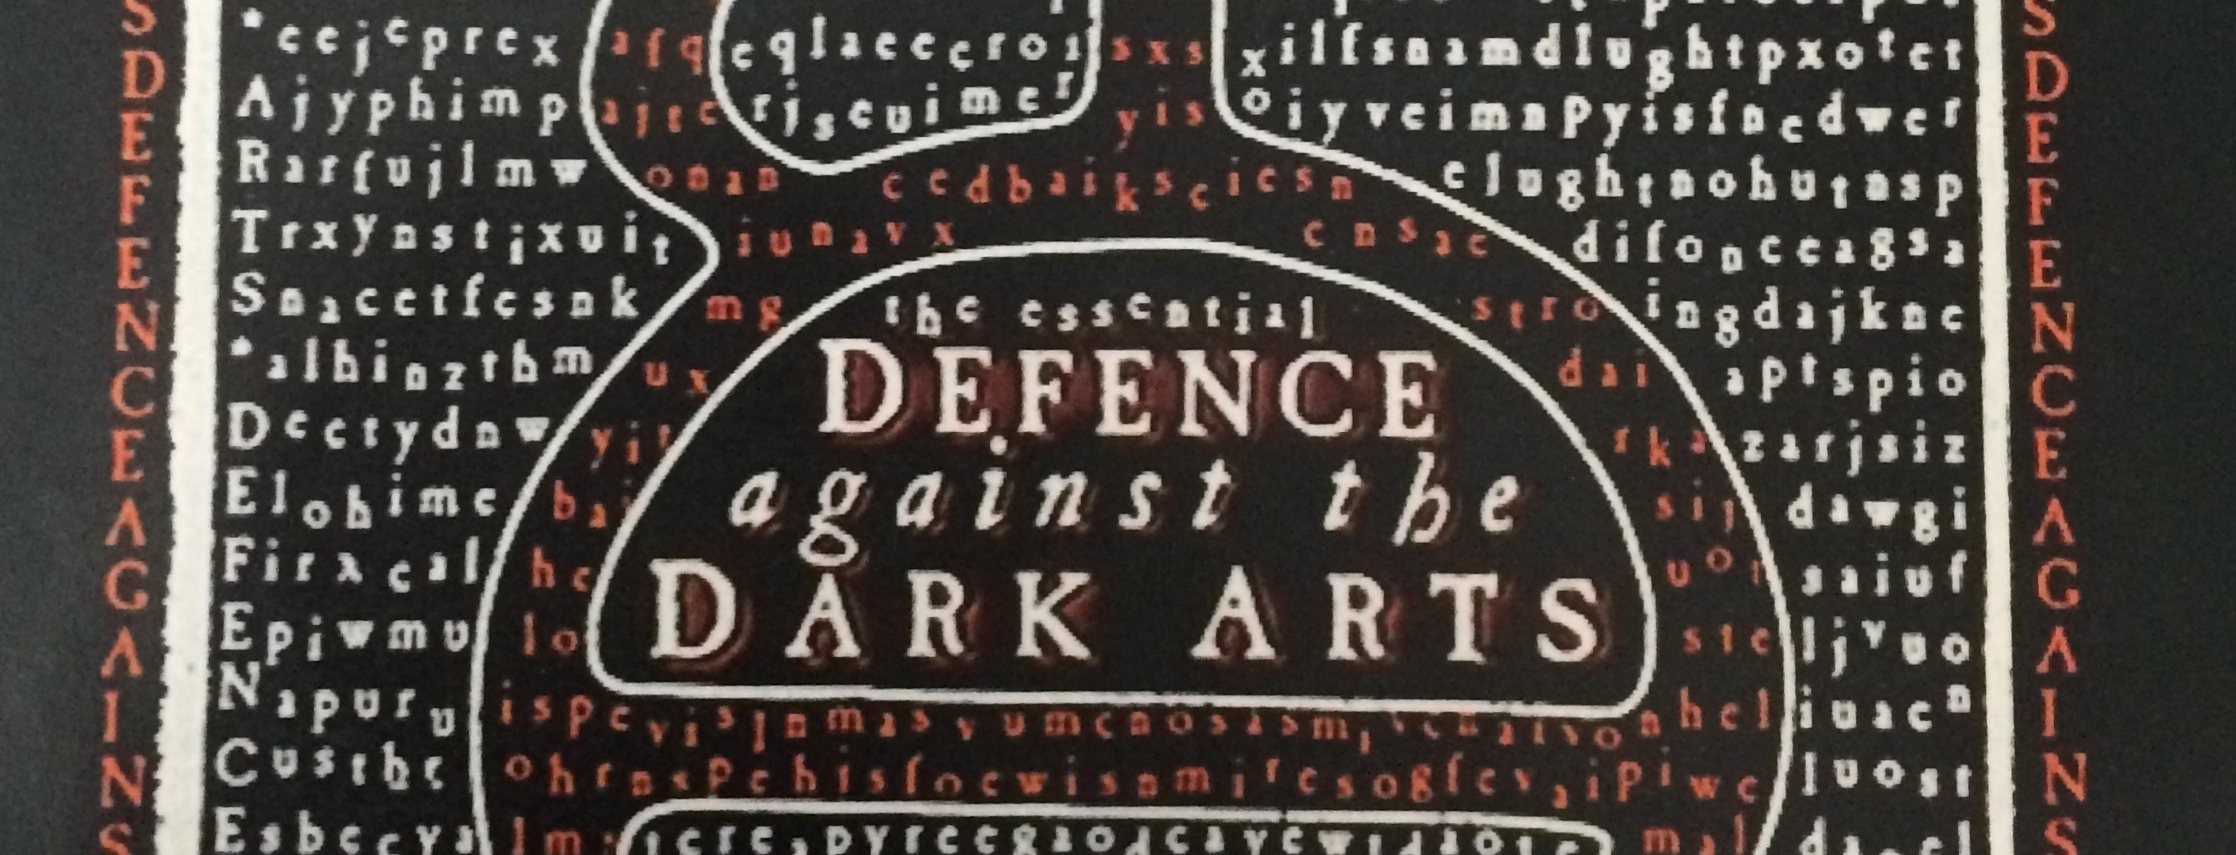 Defense against the dark arts of the internet